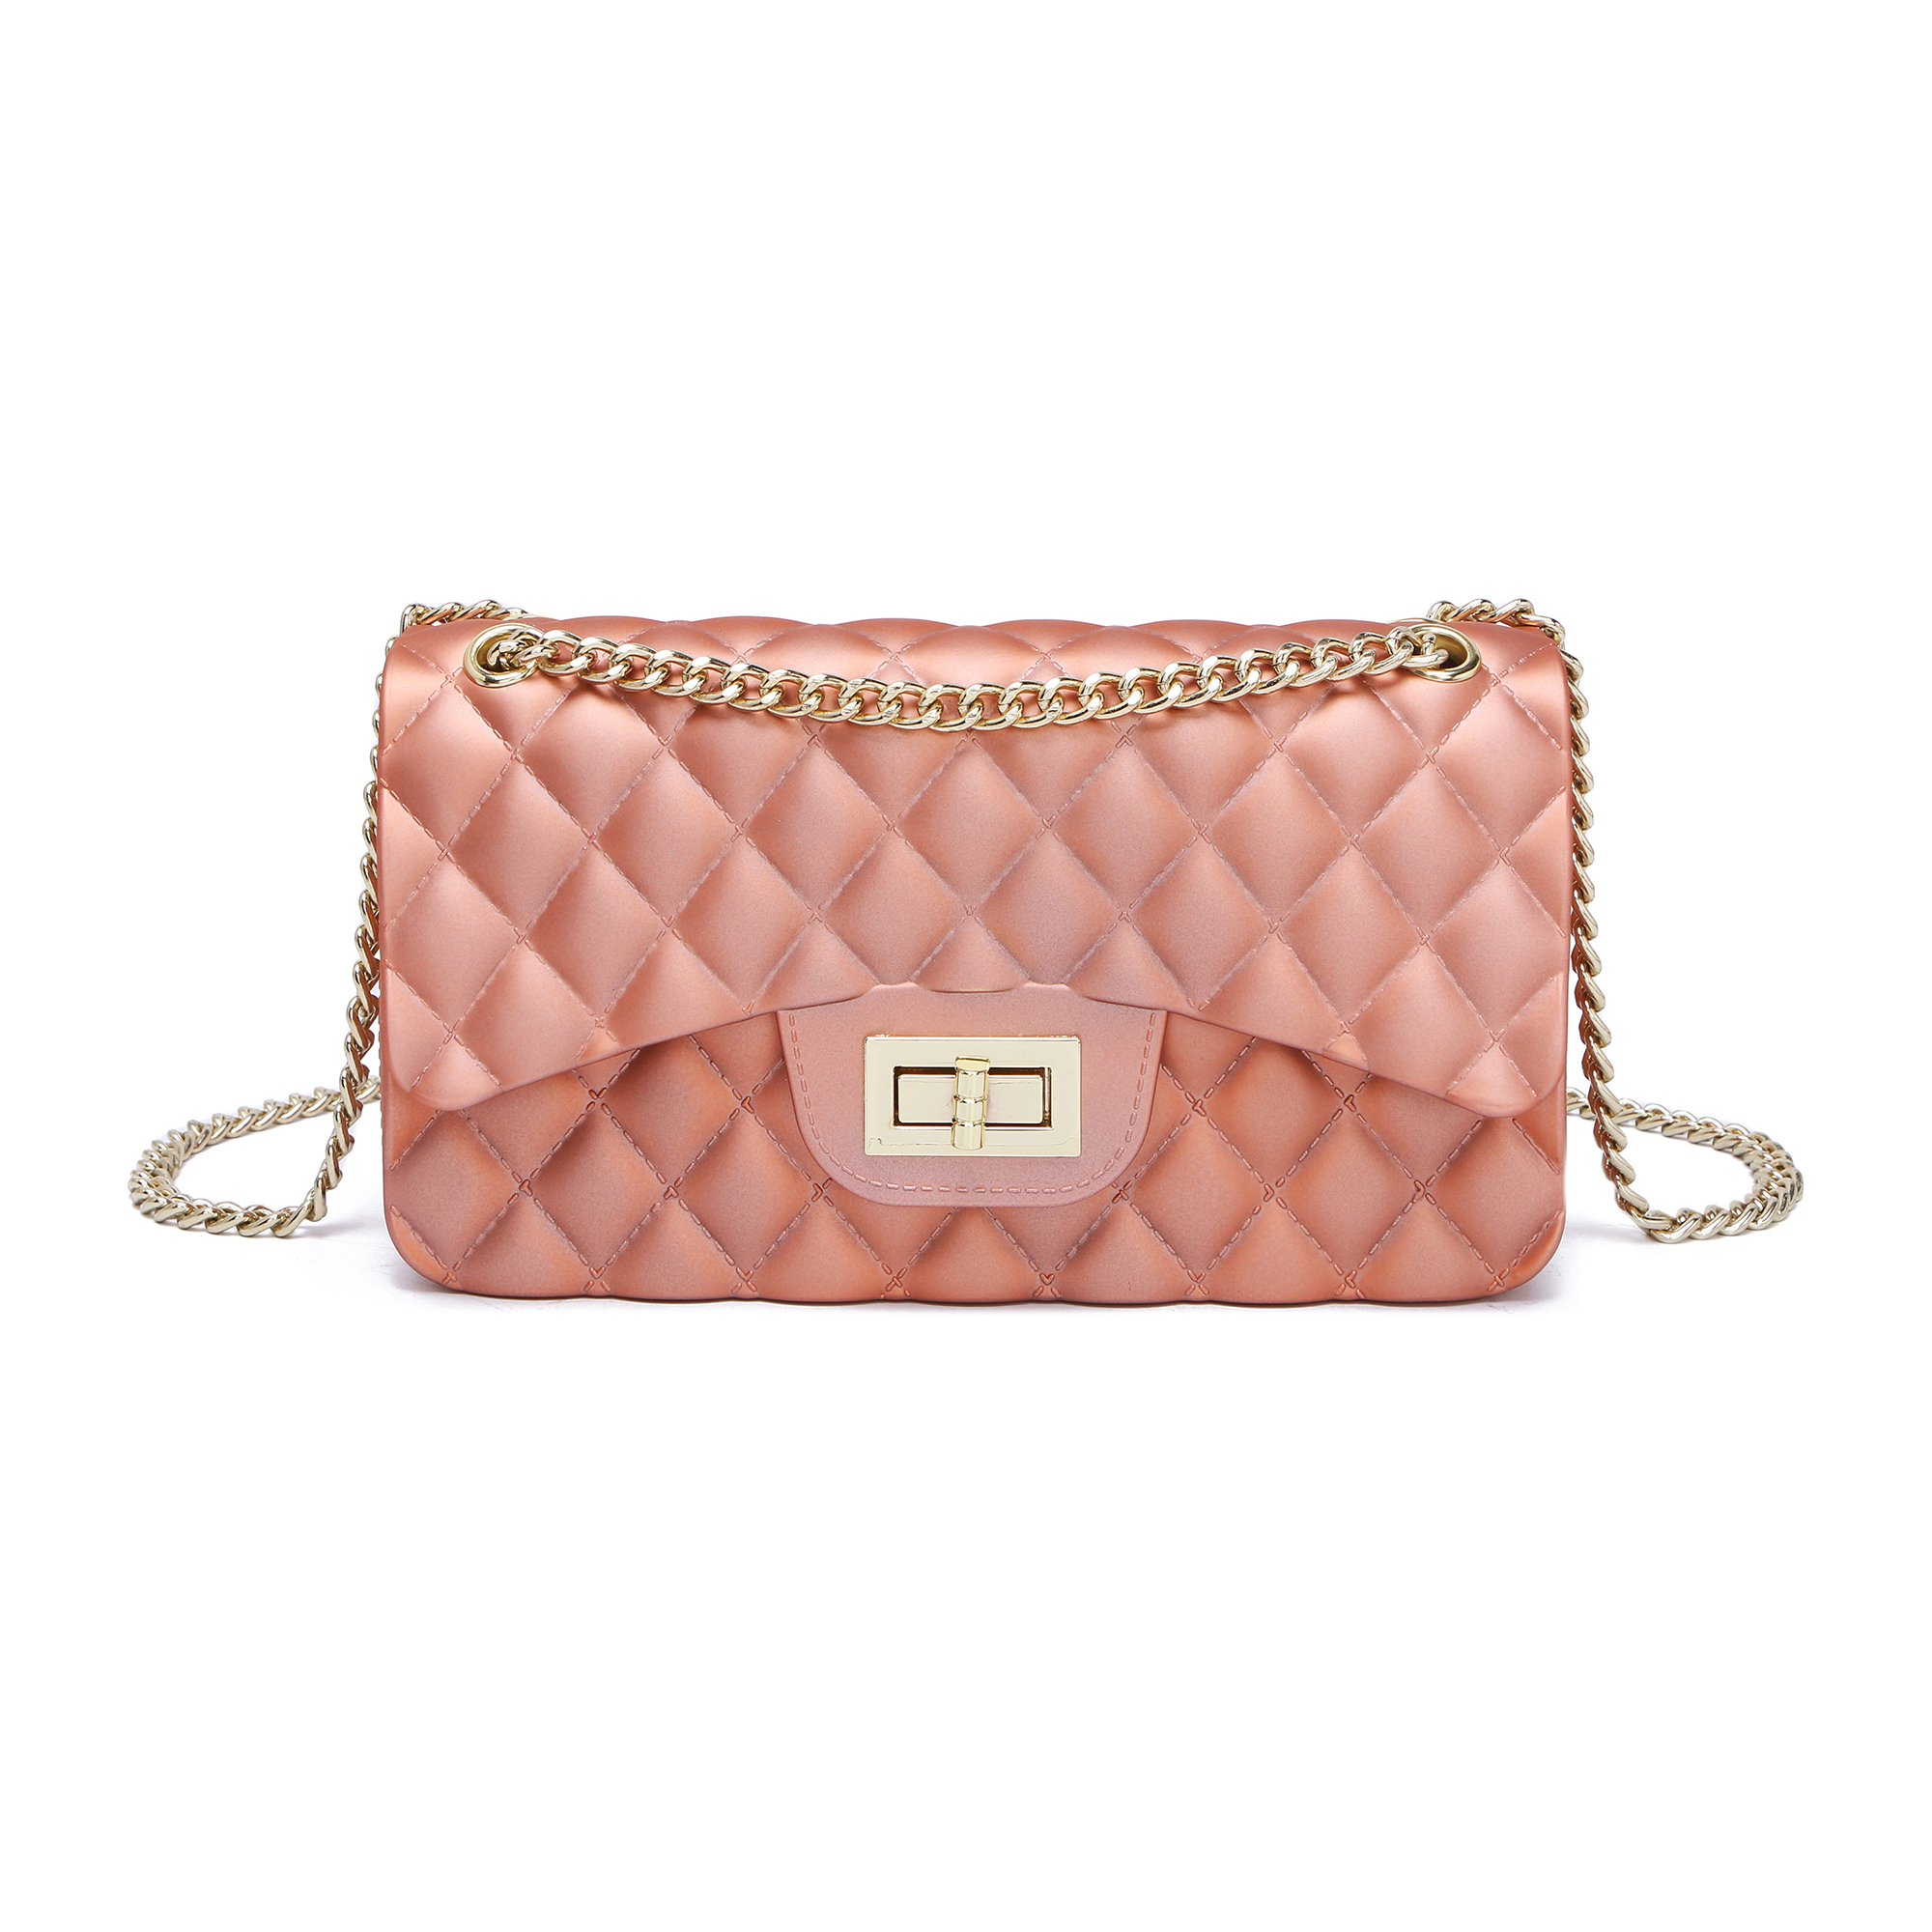 Women Shoulder Bag Jelly Clutch Handbag Quilted Crossbody Bag with Chain (Pink S)